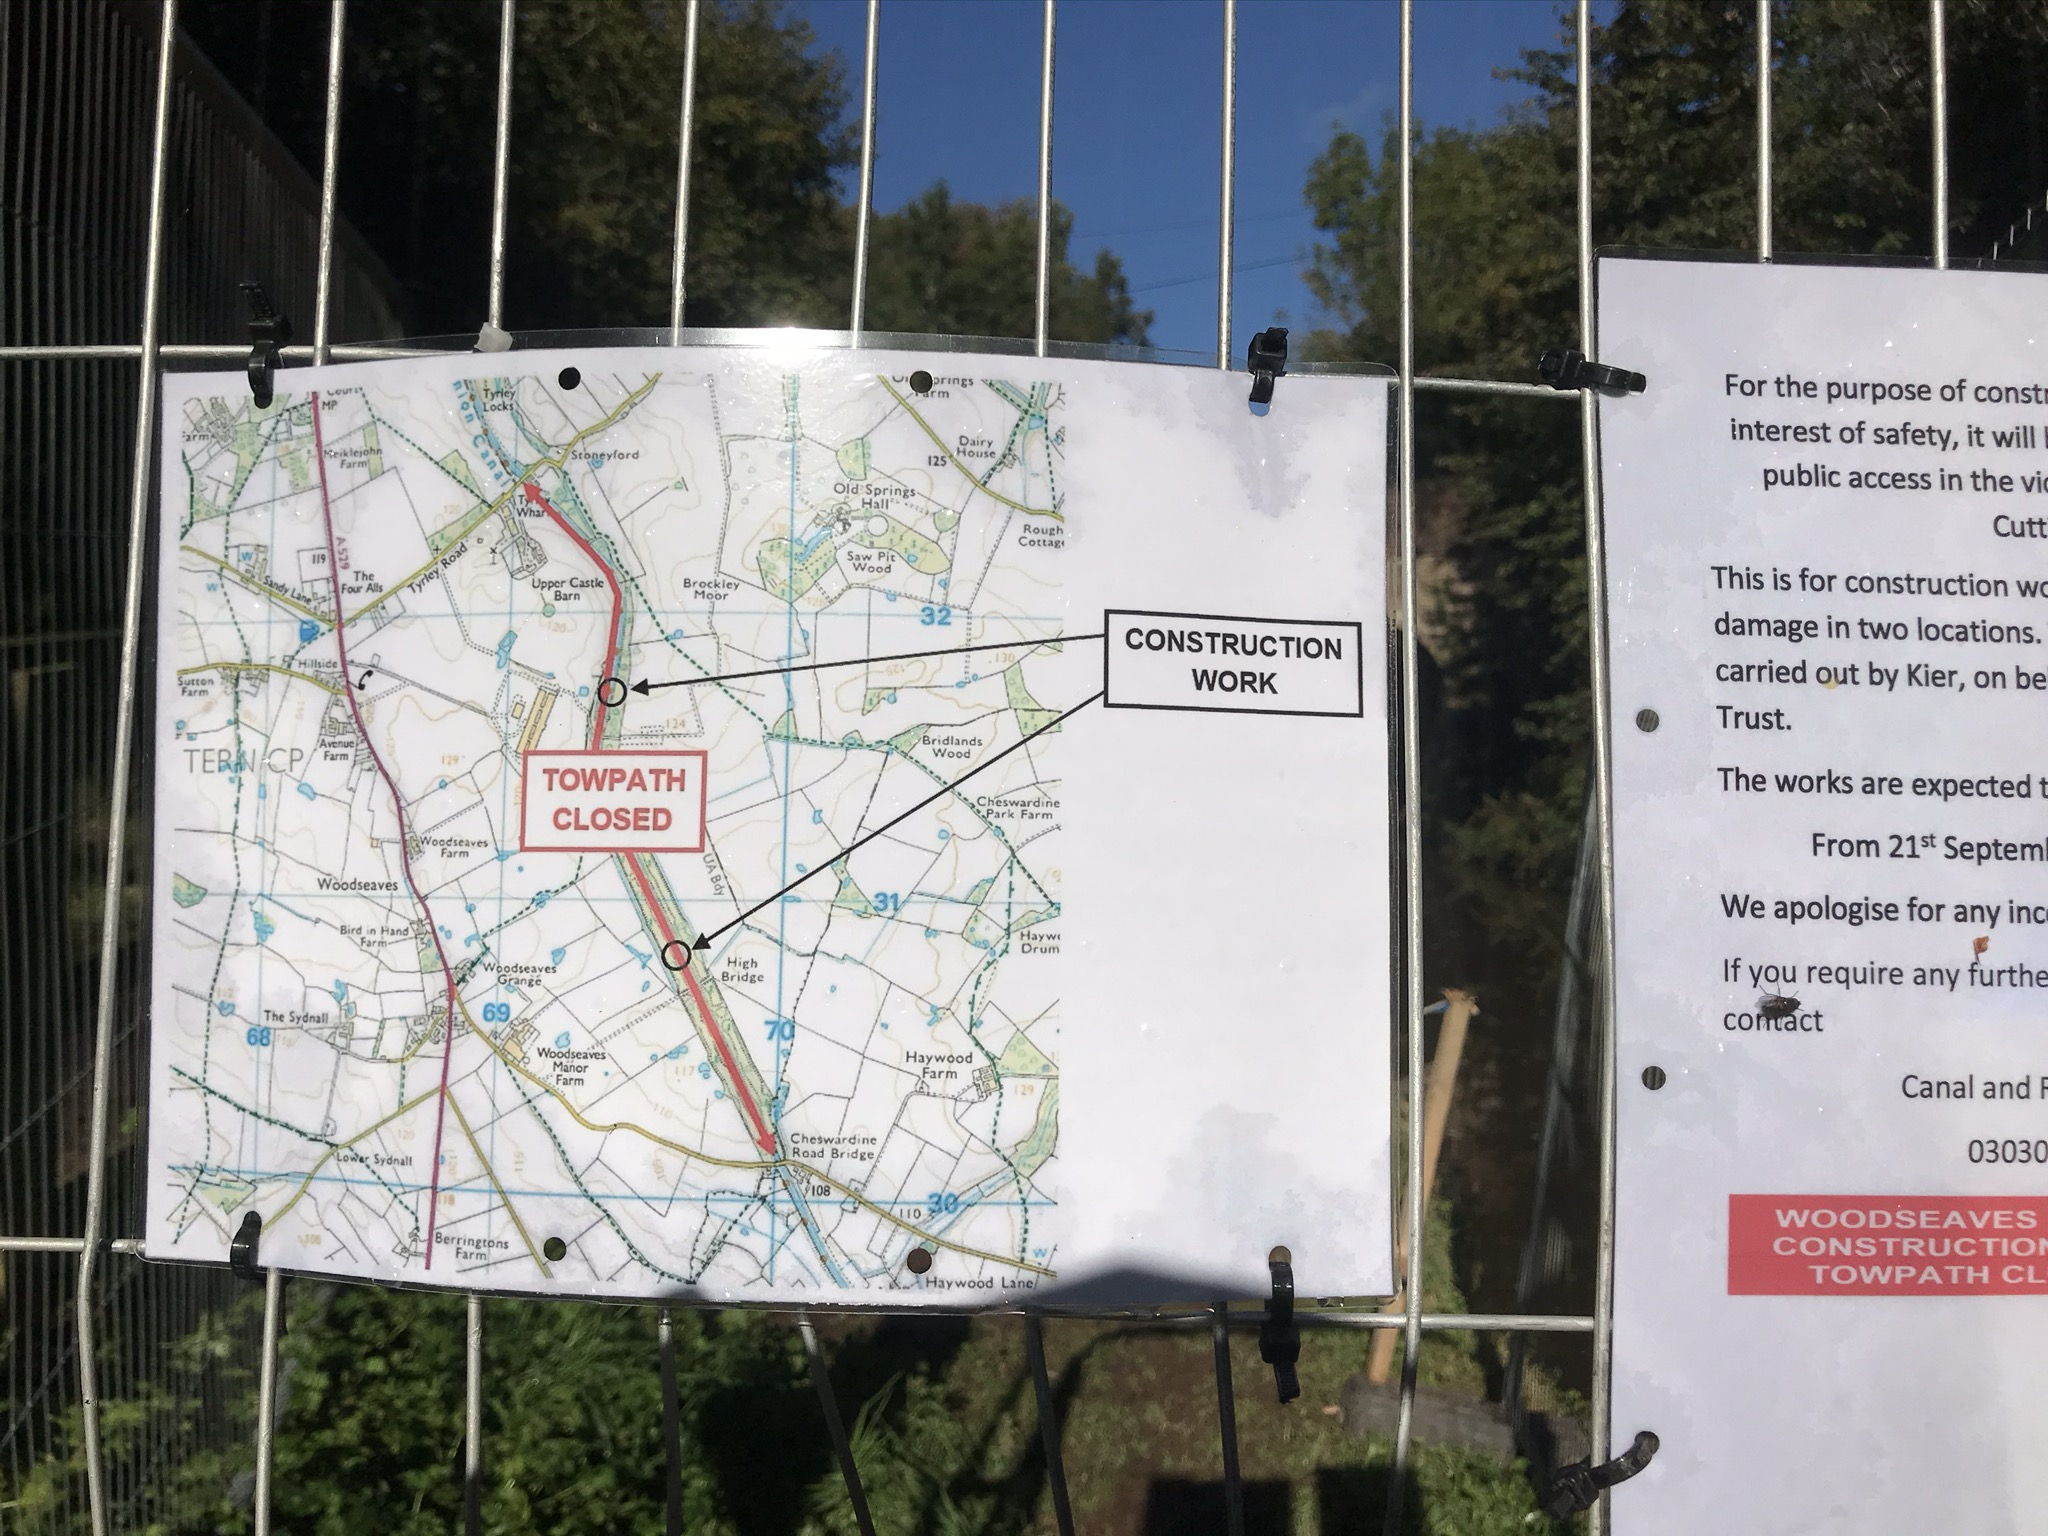 A construction work sign tied to a wire fence. The sign is a map showing a section of the footpath is closed with two areas of construction.